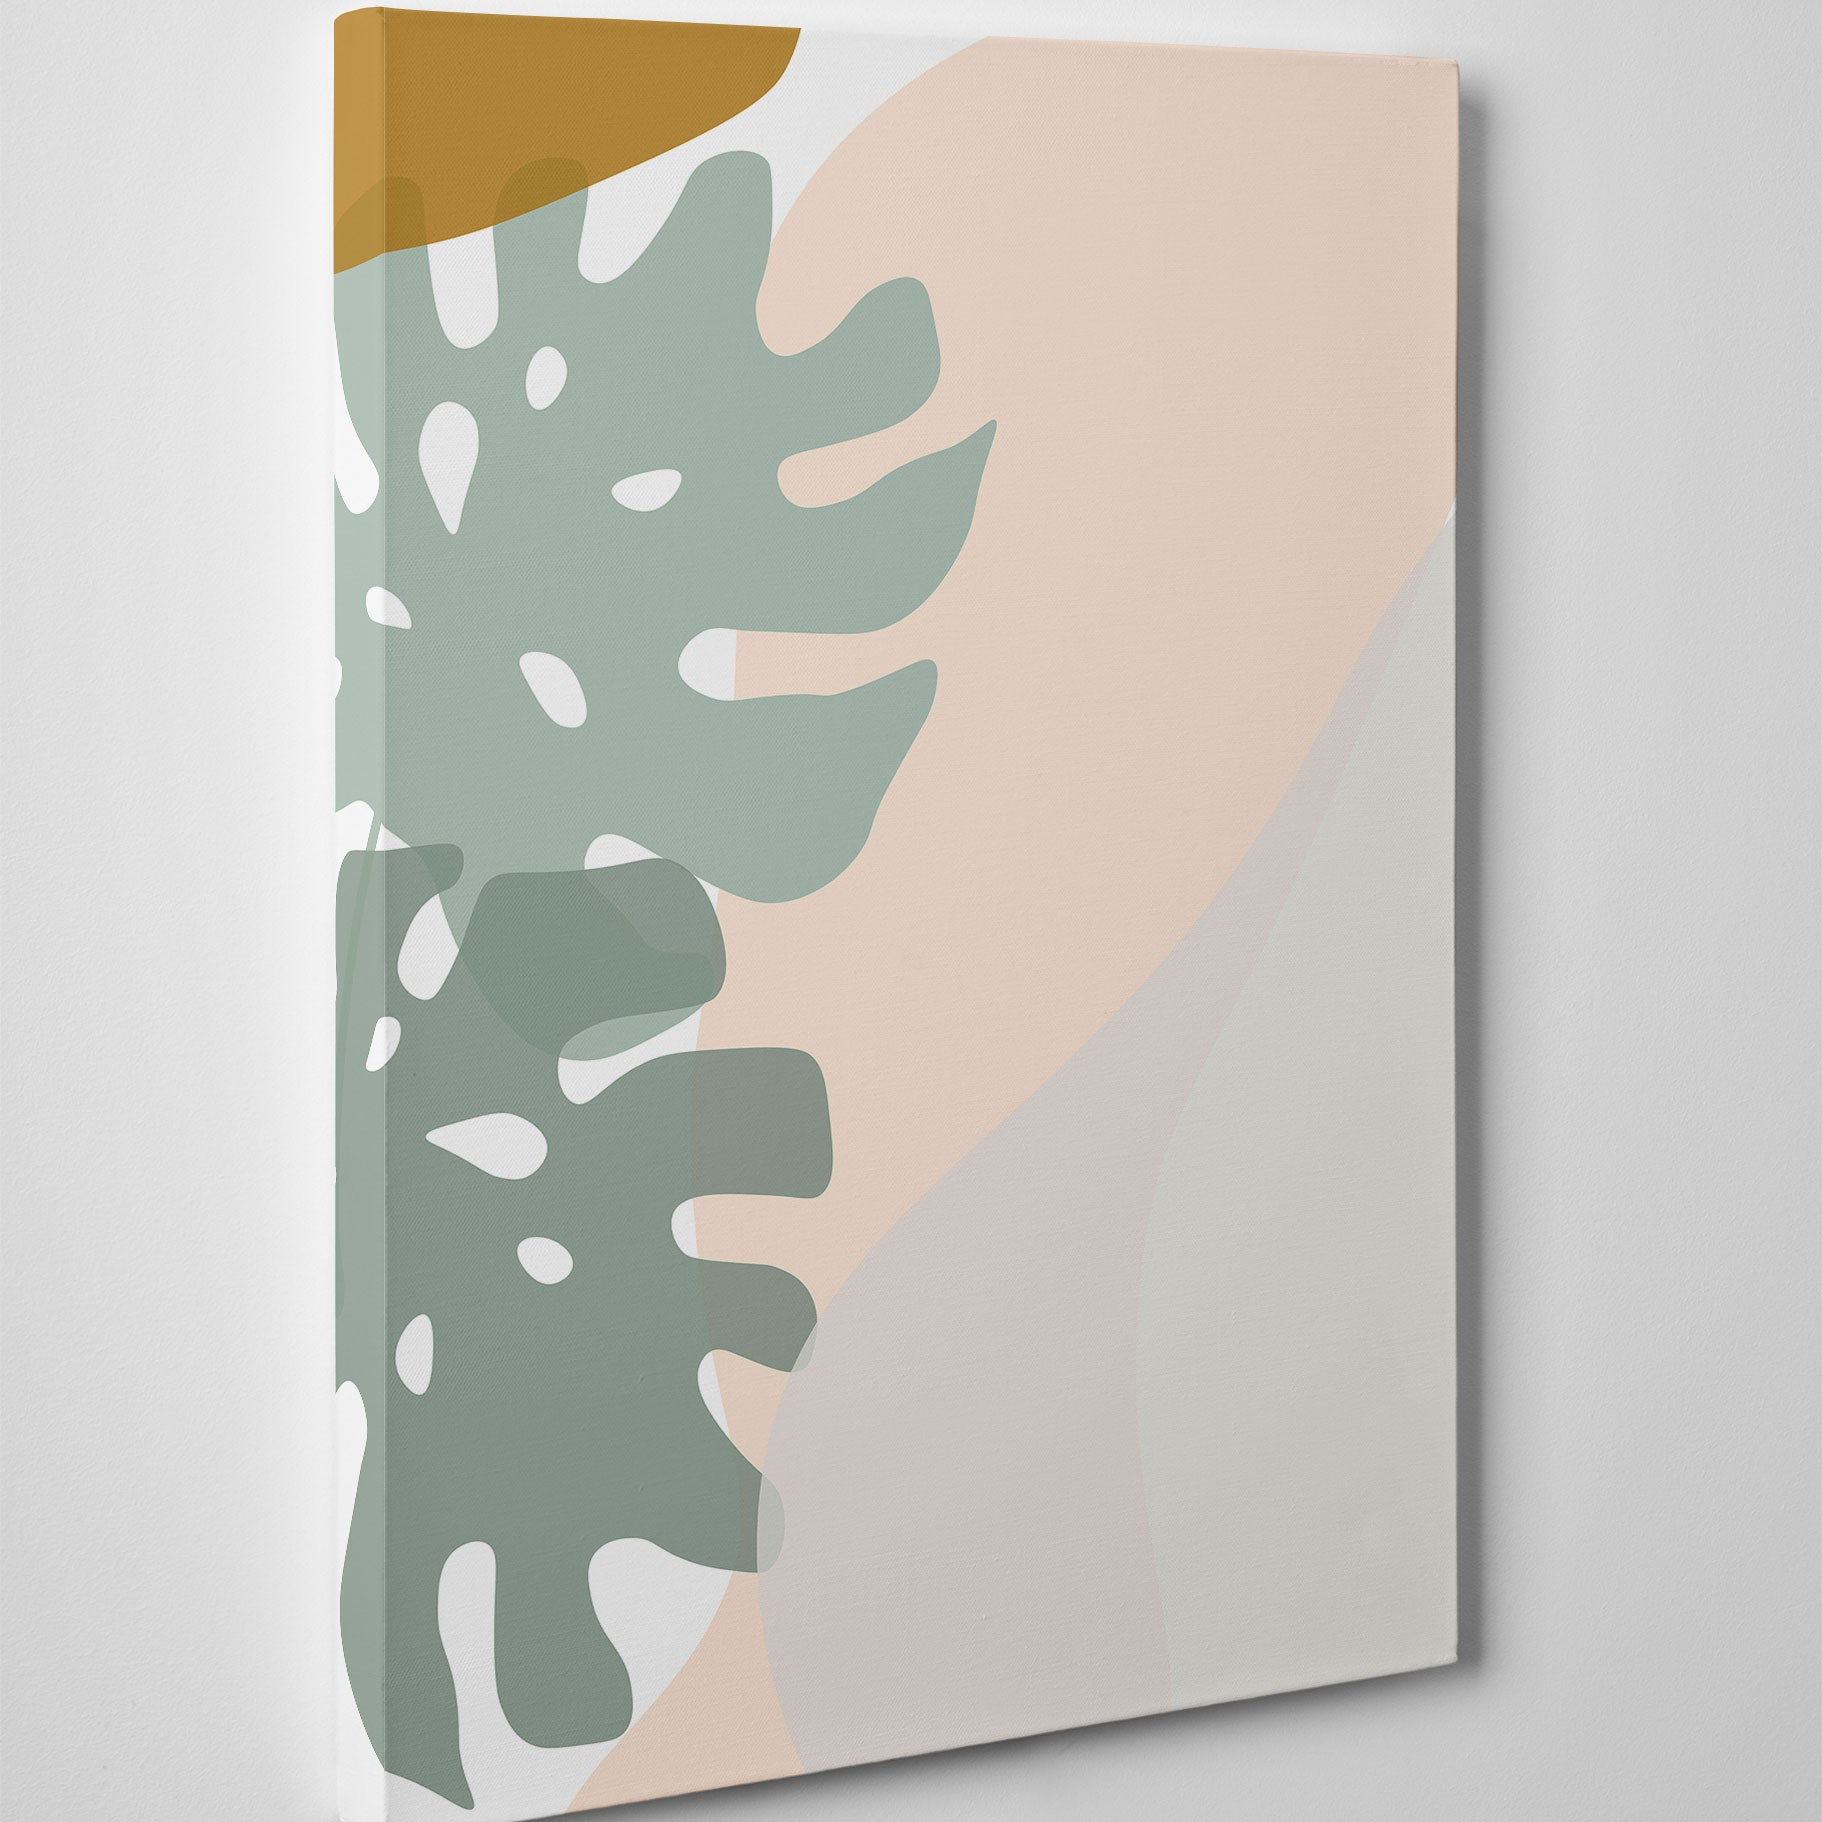 Abstract drawing canvas print with grey and pink leaves and shapes drawing on white background - side view